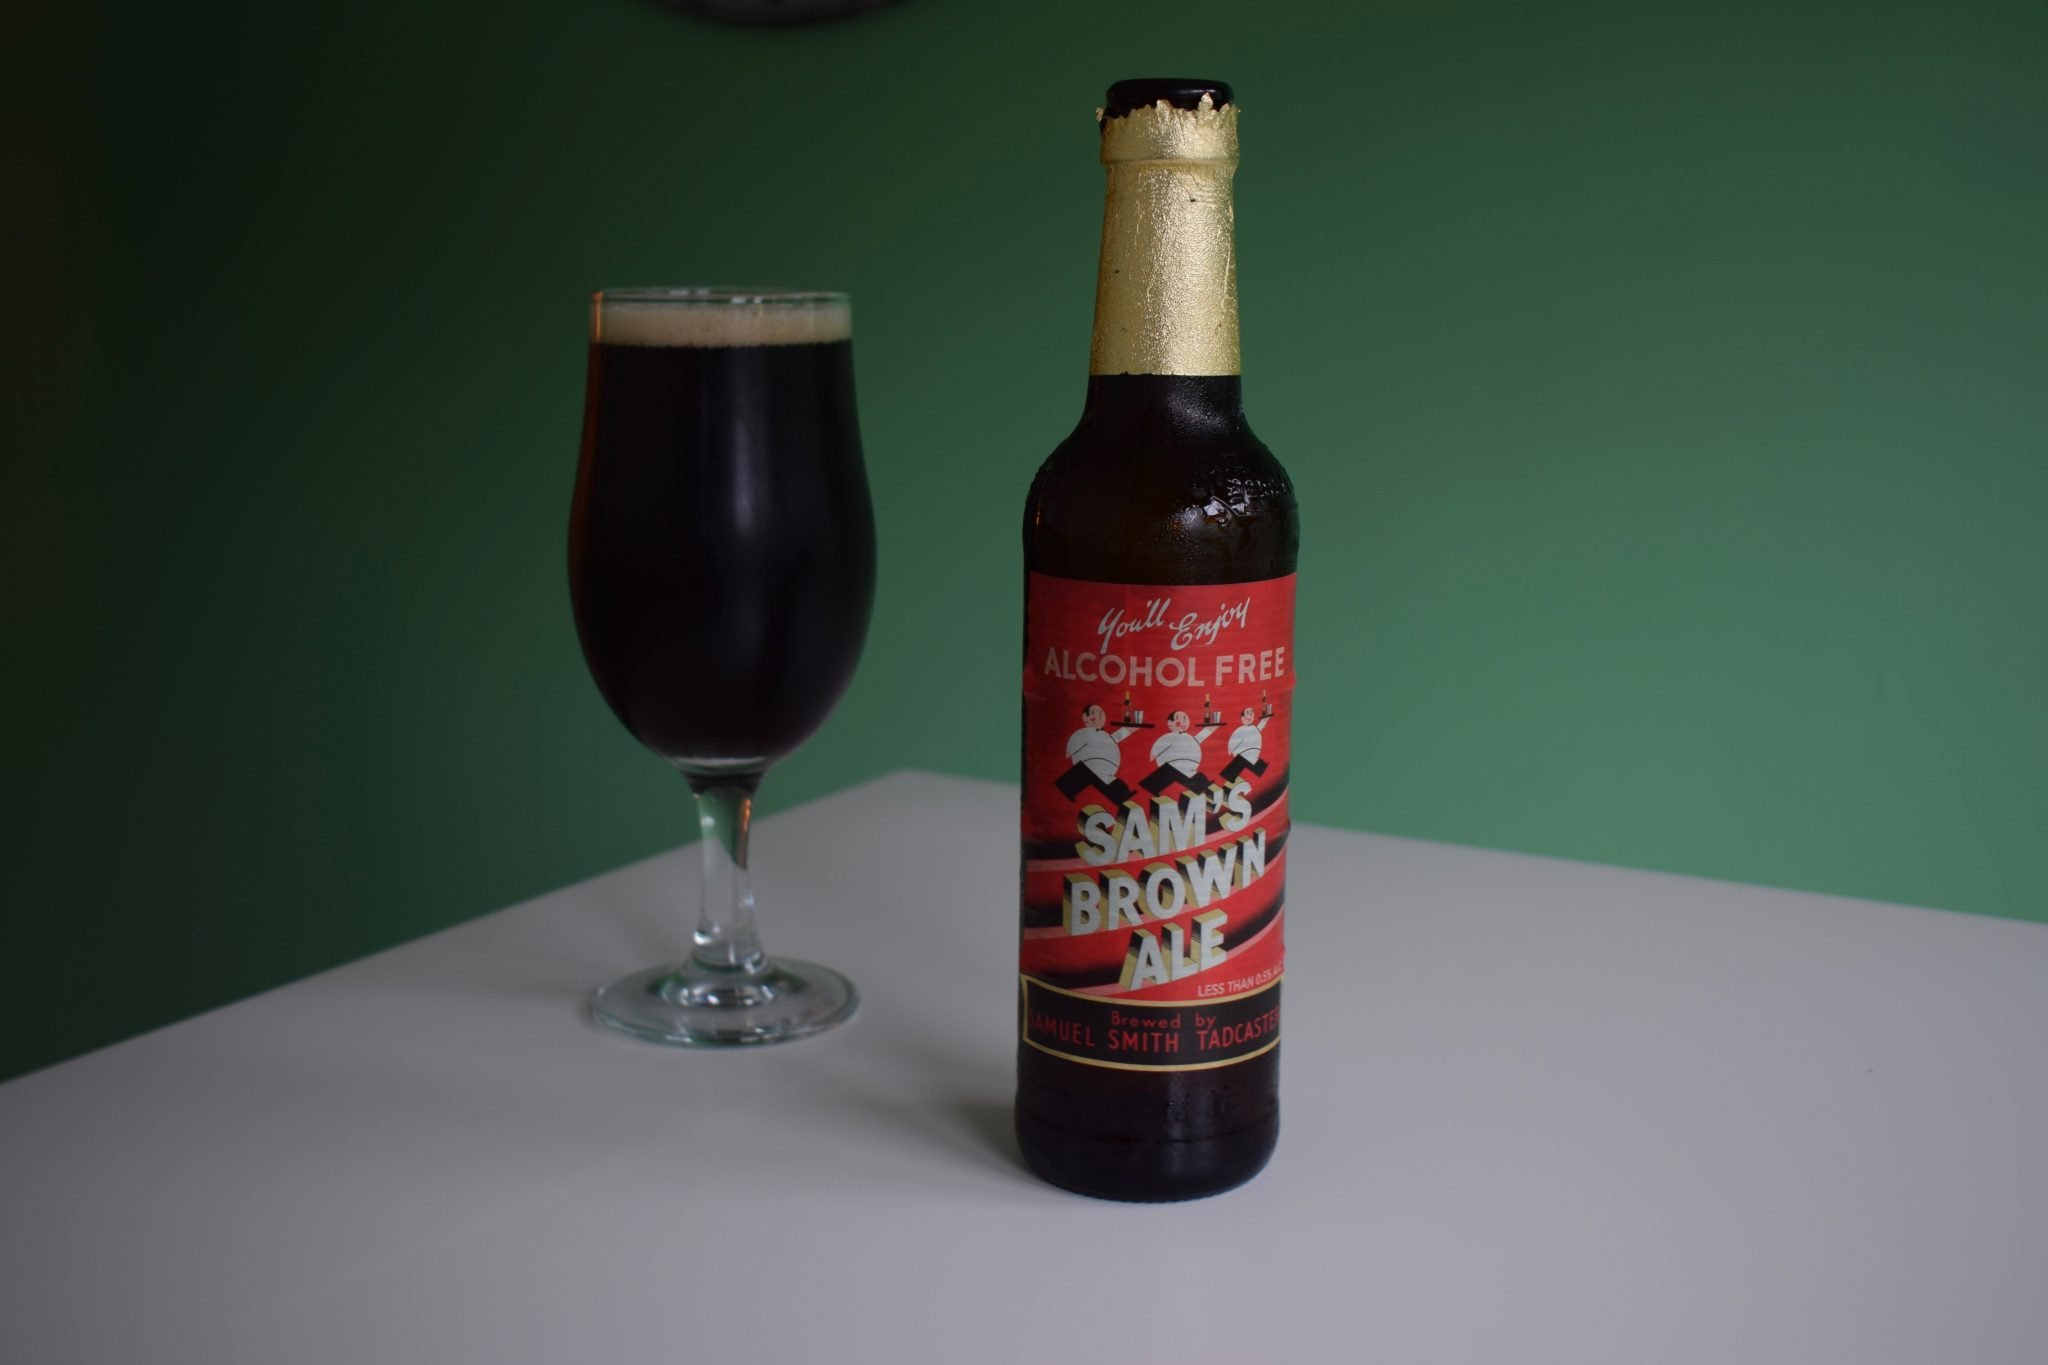 """Sam's Brown Ale"" (0.5%) by Samuel Smith"